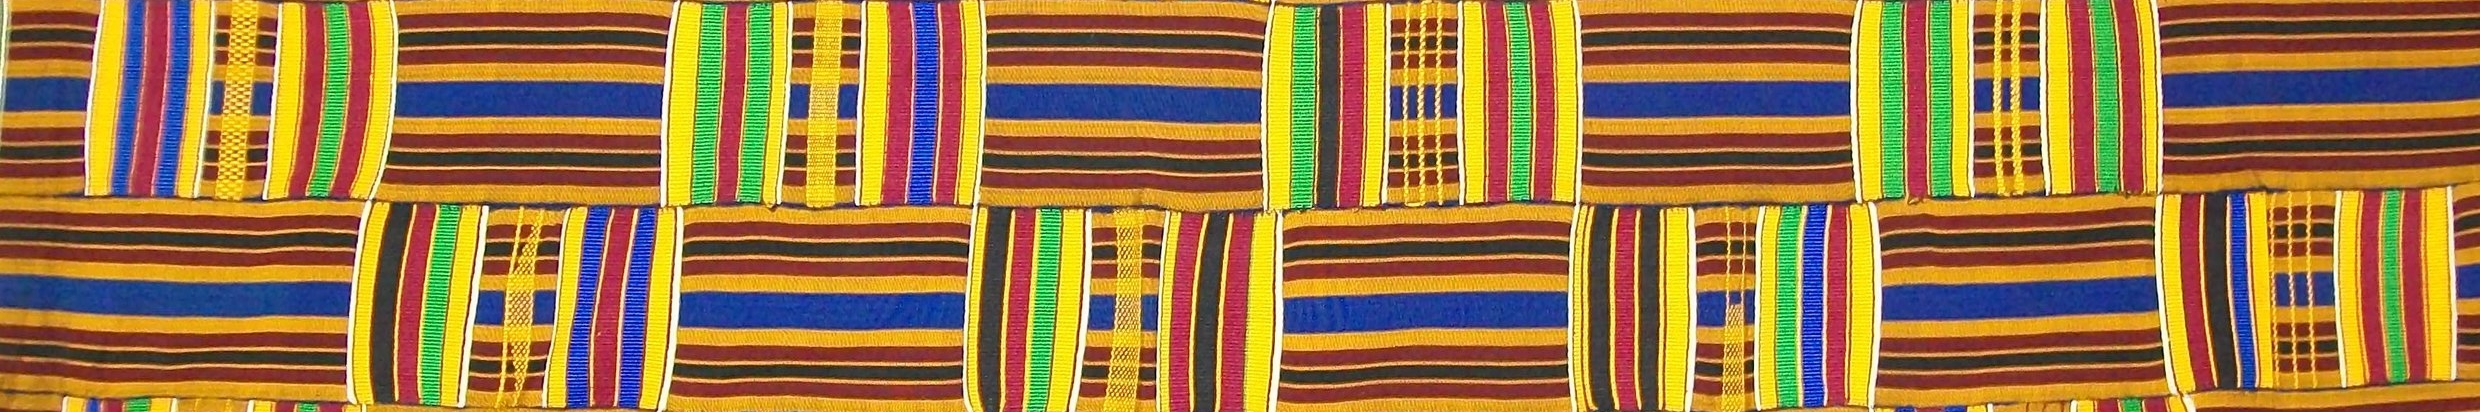 Kente_Cloth_multi_6001.jpg